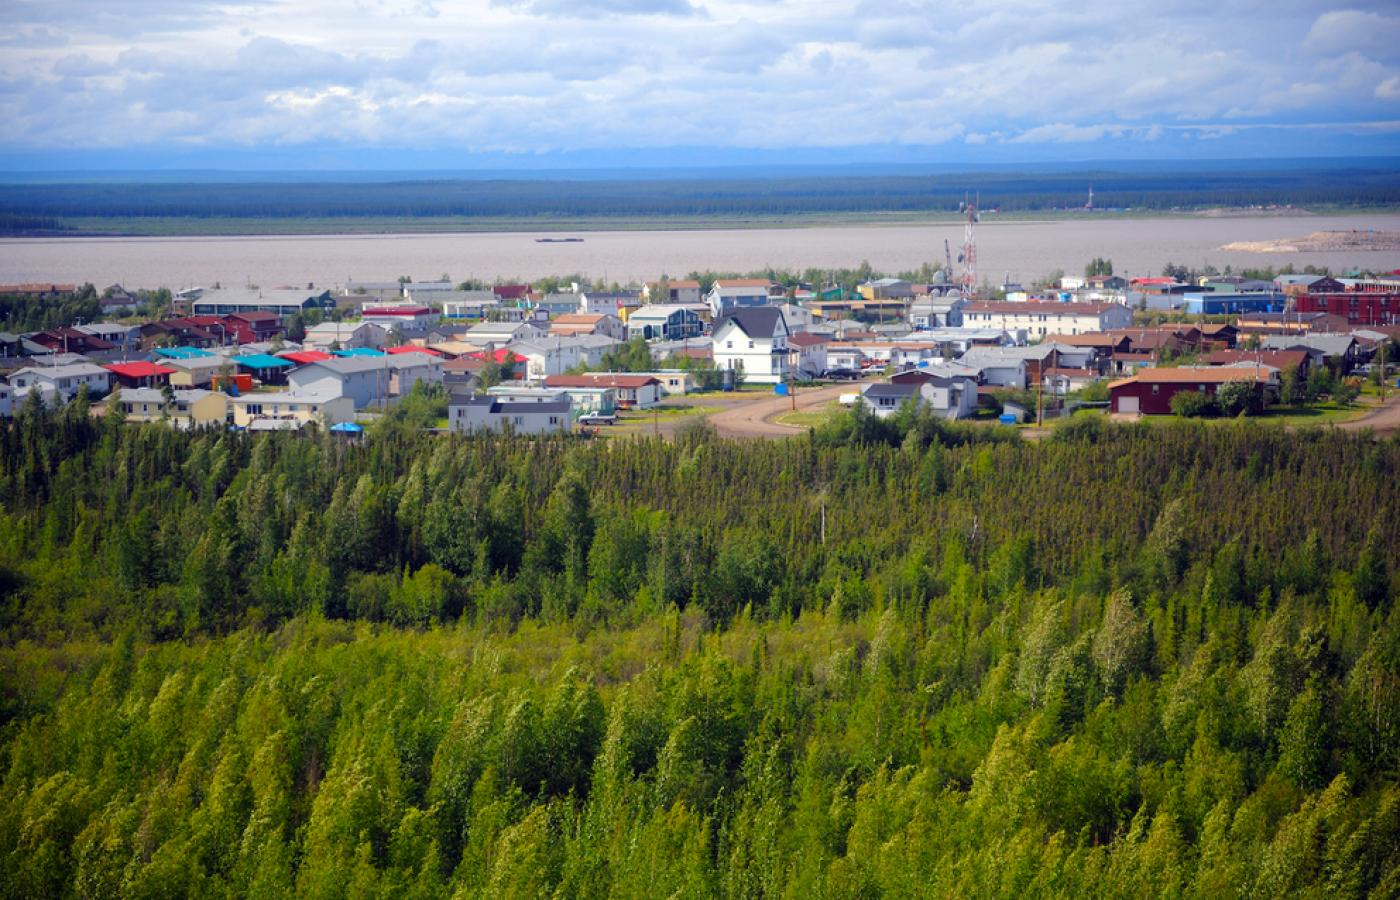 The town of Norman Wells is the hub of the Sahtu region in Canada's Northwest Territories